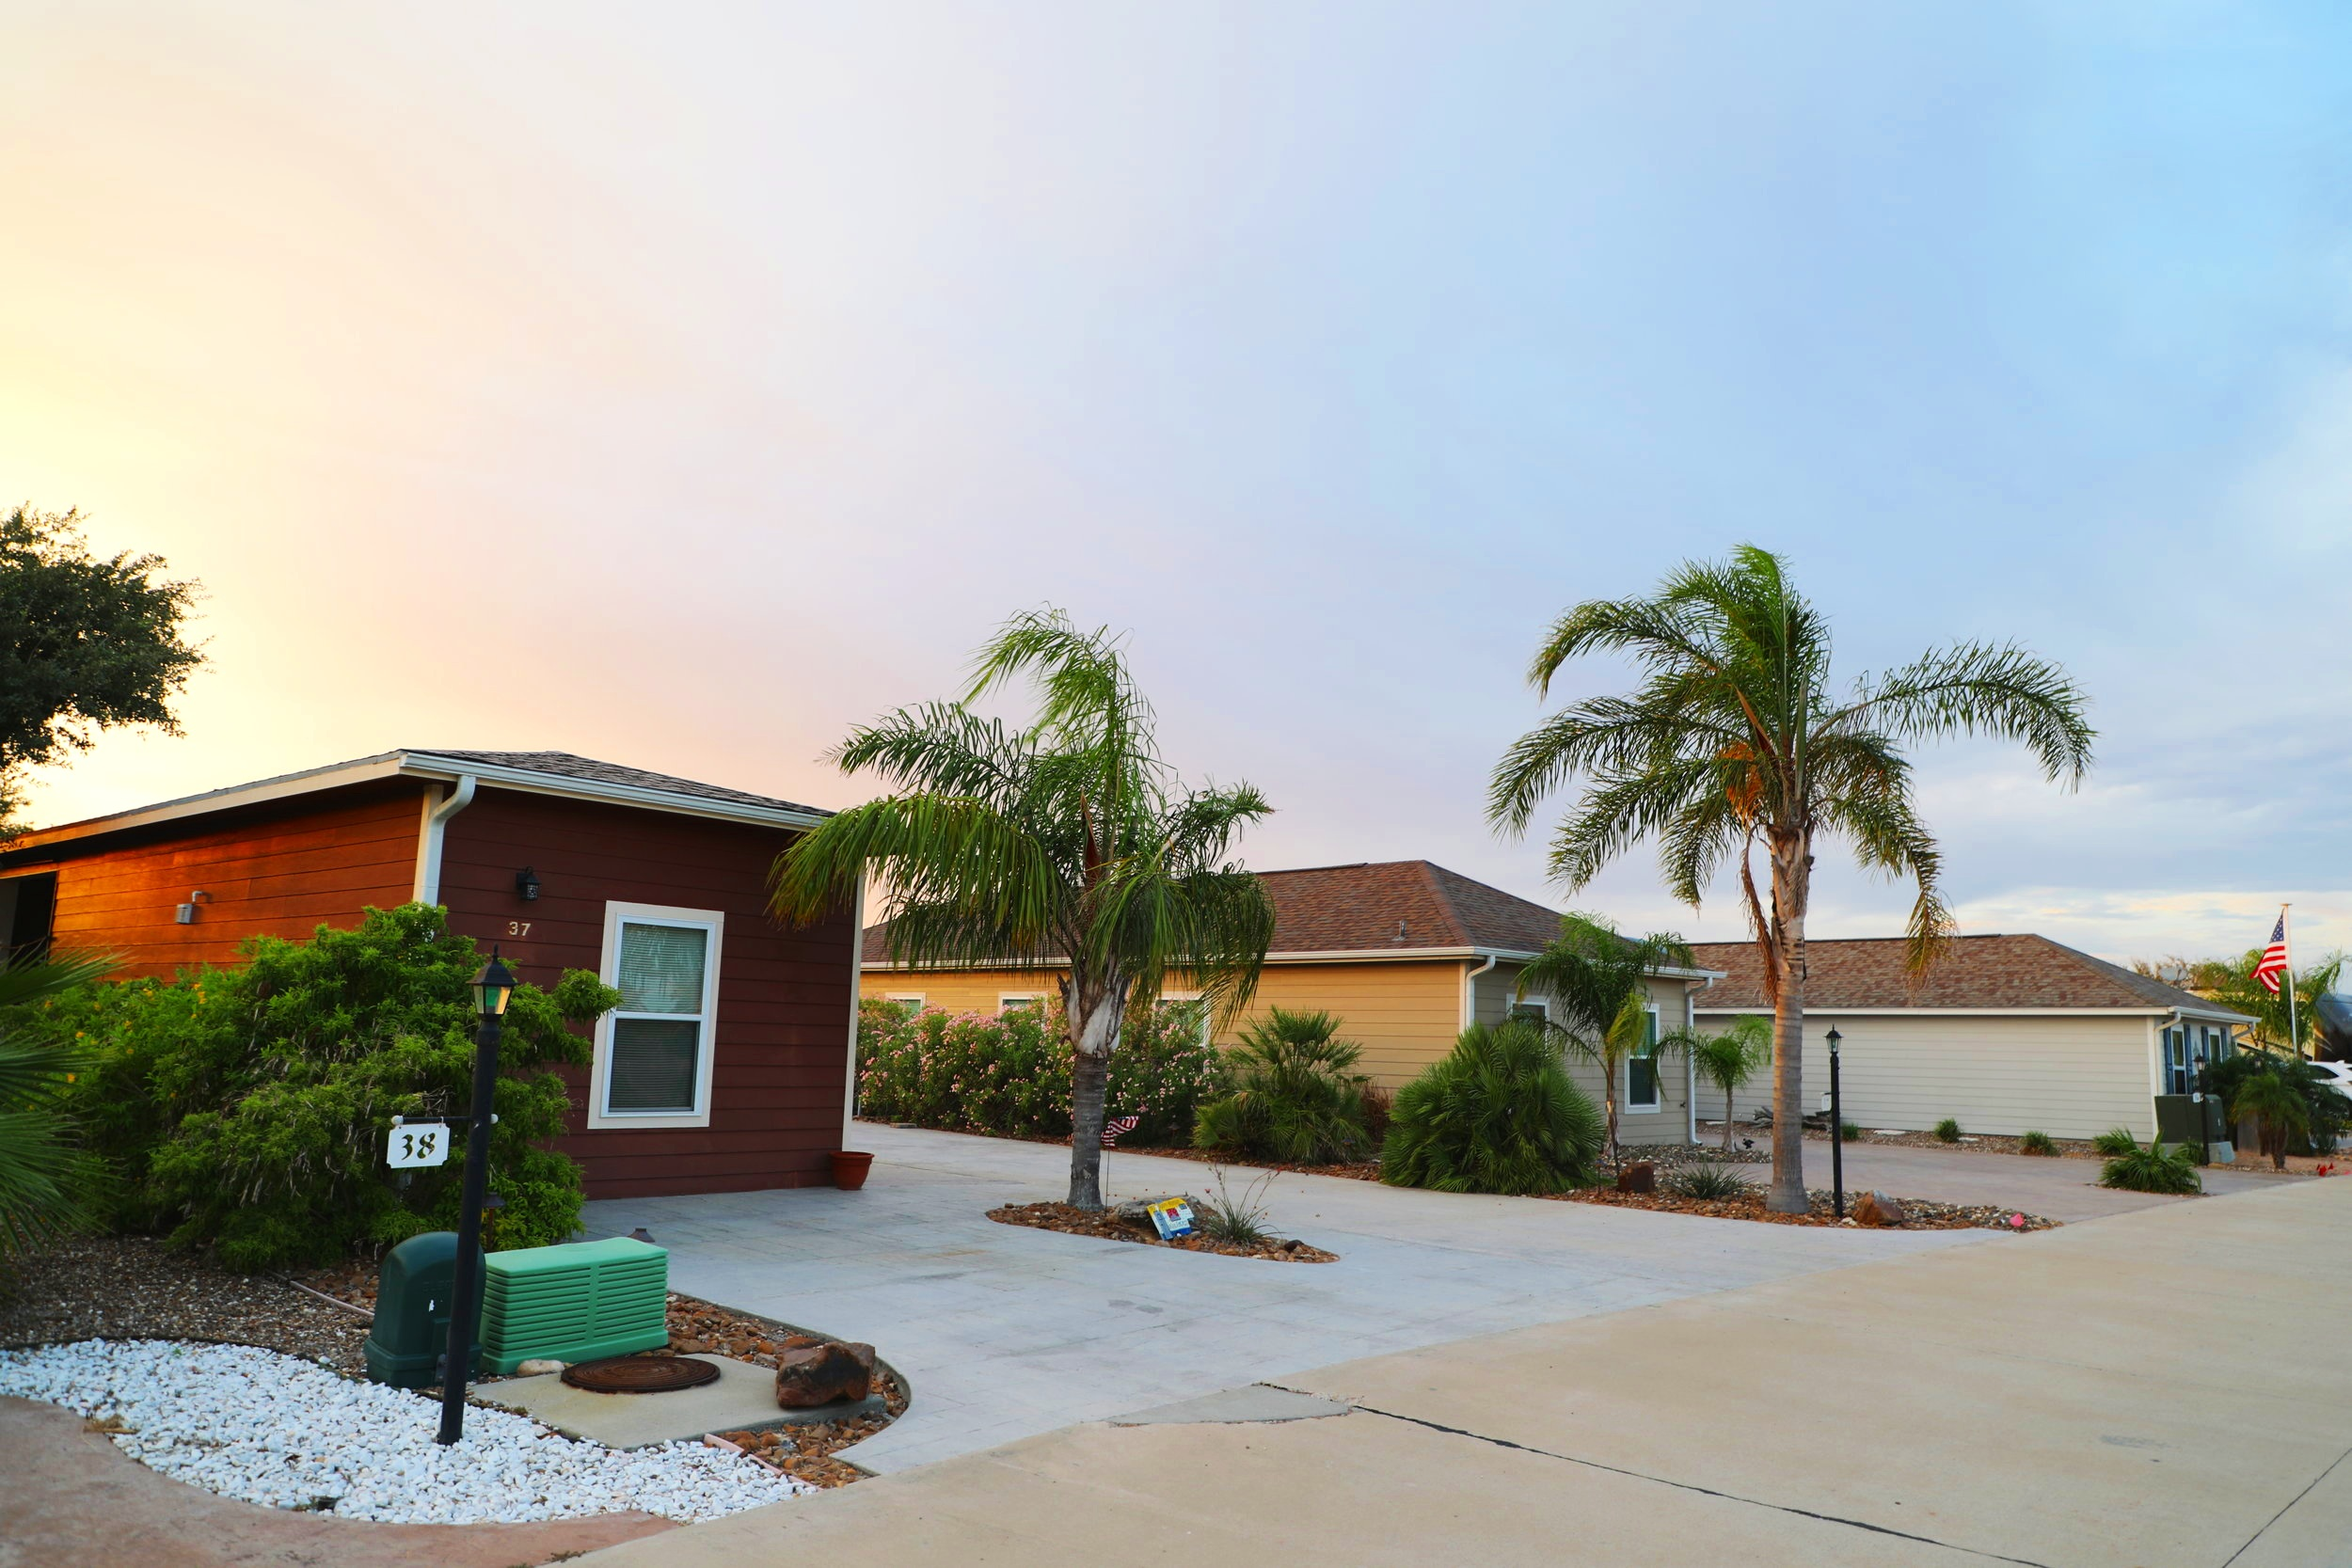 Amenities Include: - Deeded Lots in a gated RV communityLot sizes average 4,000 - 5,000 square feetConcrete RoadsCovenantsincludeLot Owner's AssociationCity water andsewer, electric, phone and cable availableProperty Management available